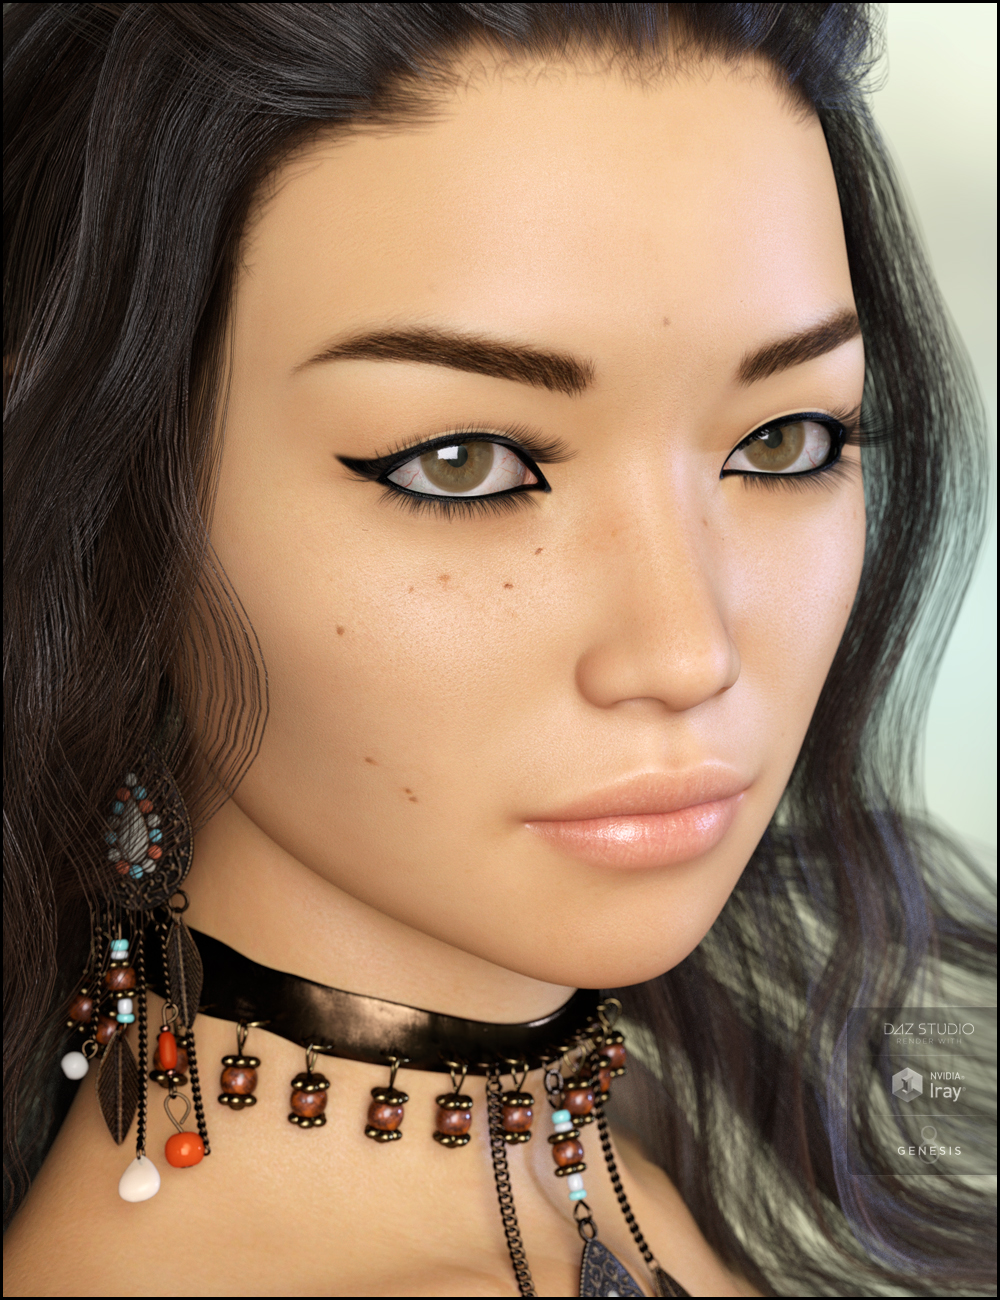 Jasmina for Genesis 8 Female